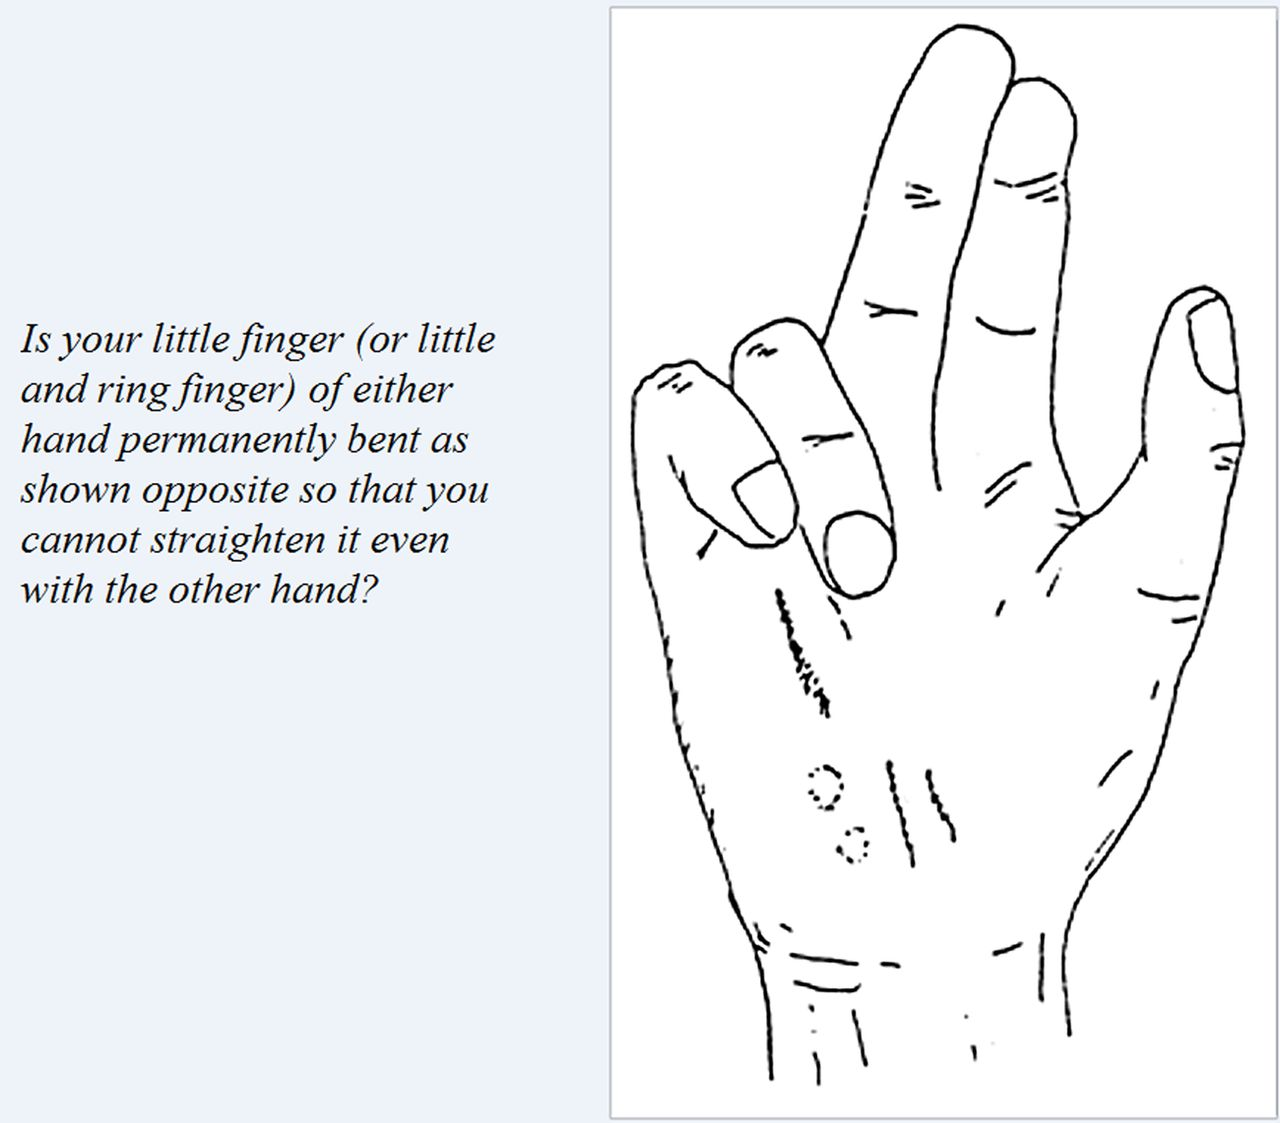 Dupuytren's contracture and occupational exposure to hand